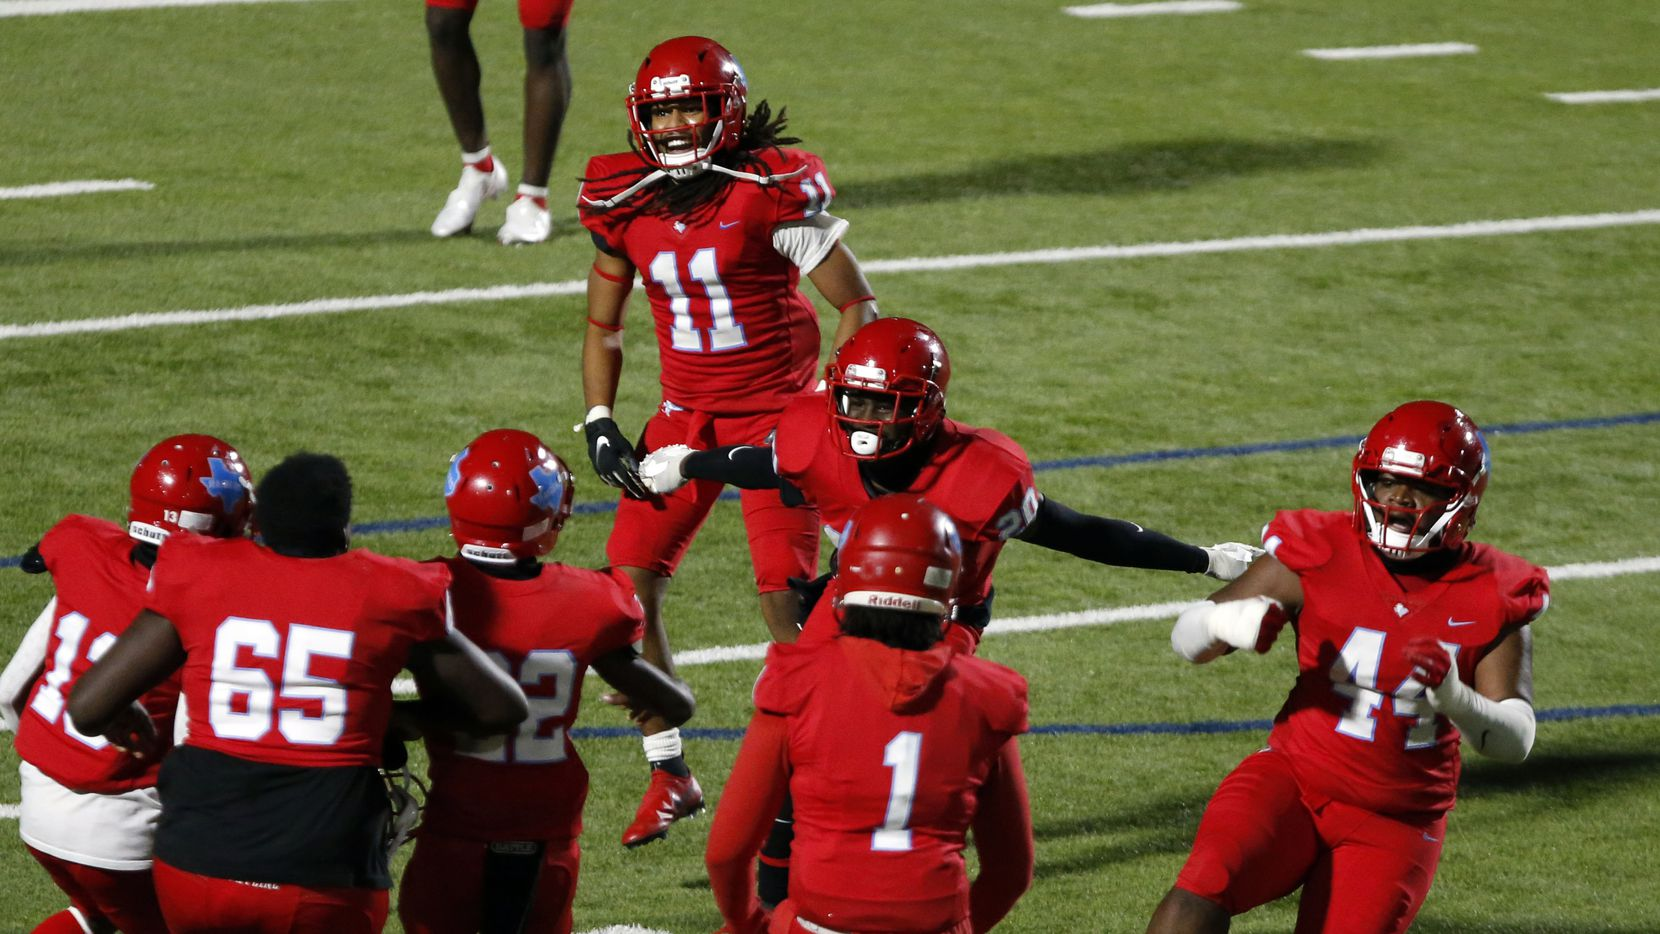 Skyline's Gregory Johnson (20) celebrates his game-ending interception with teammates during the final quarter of a high school football game between against North Mesquite High at Forester Field in Dallas on Thursday, November 19, 2020. Skyline won 31-23.